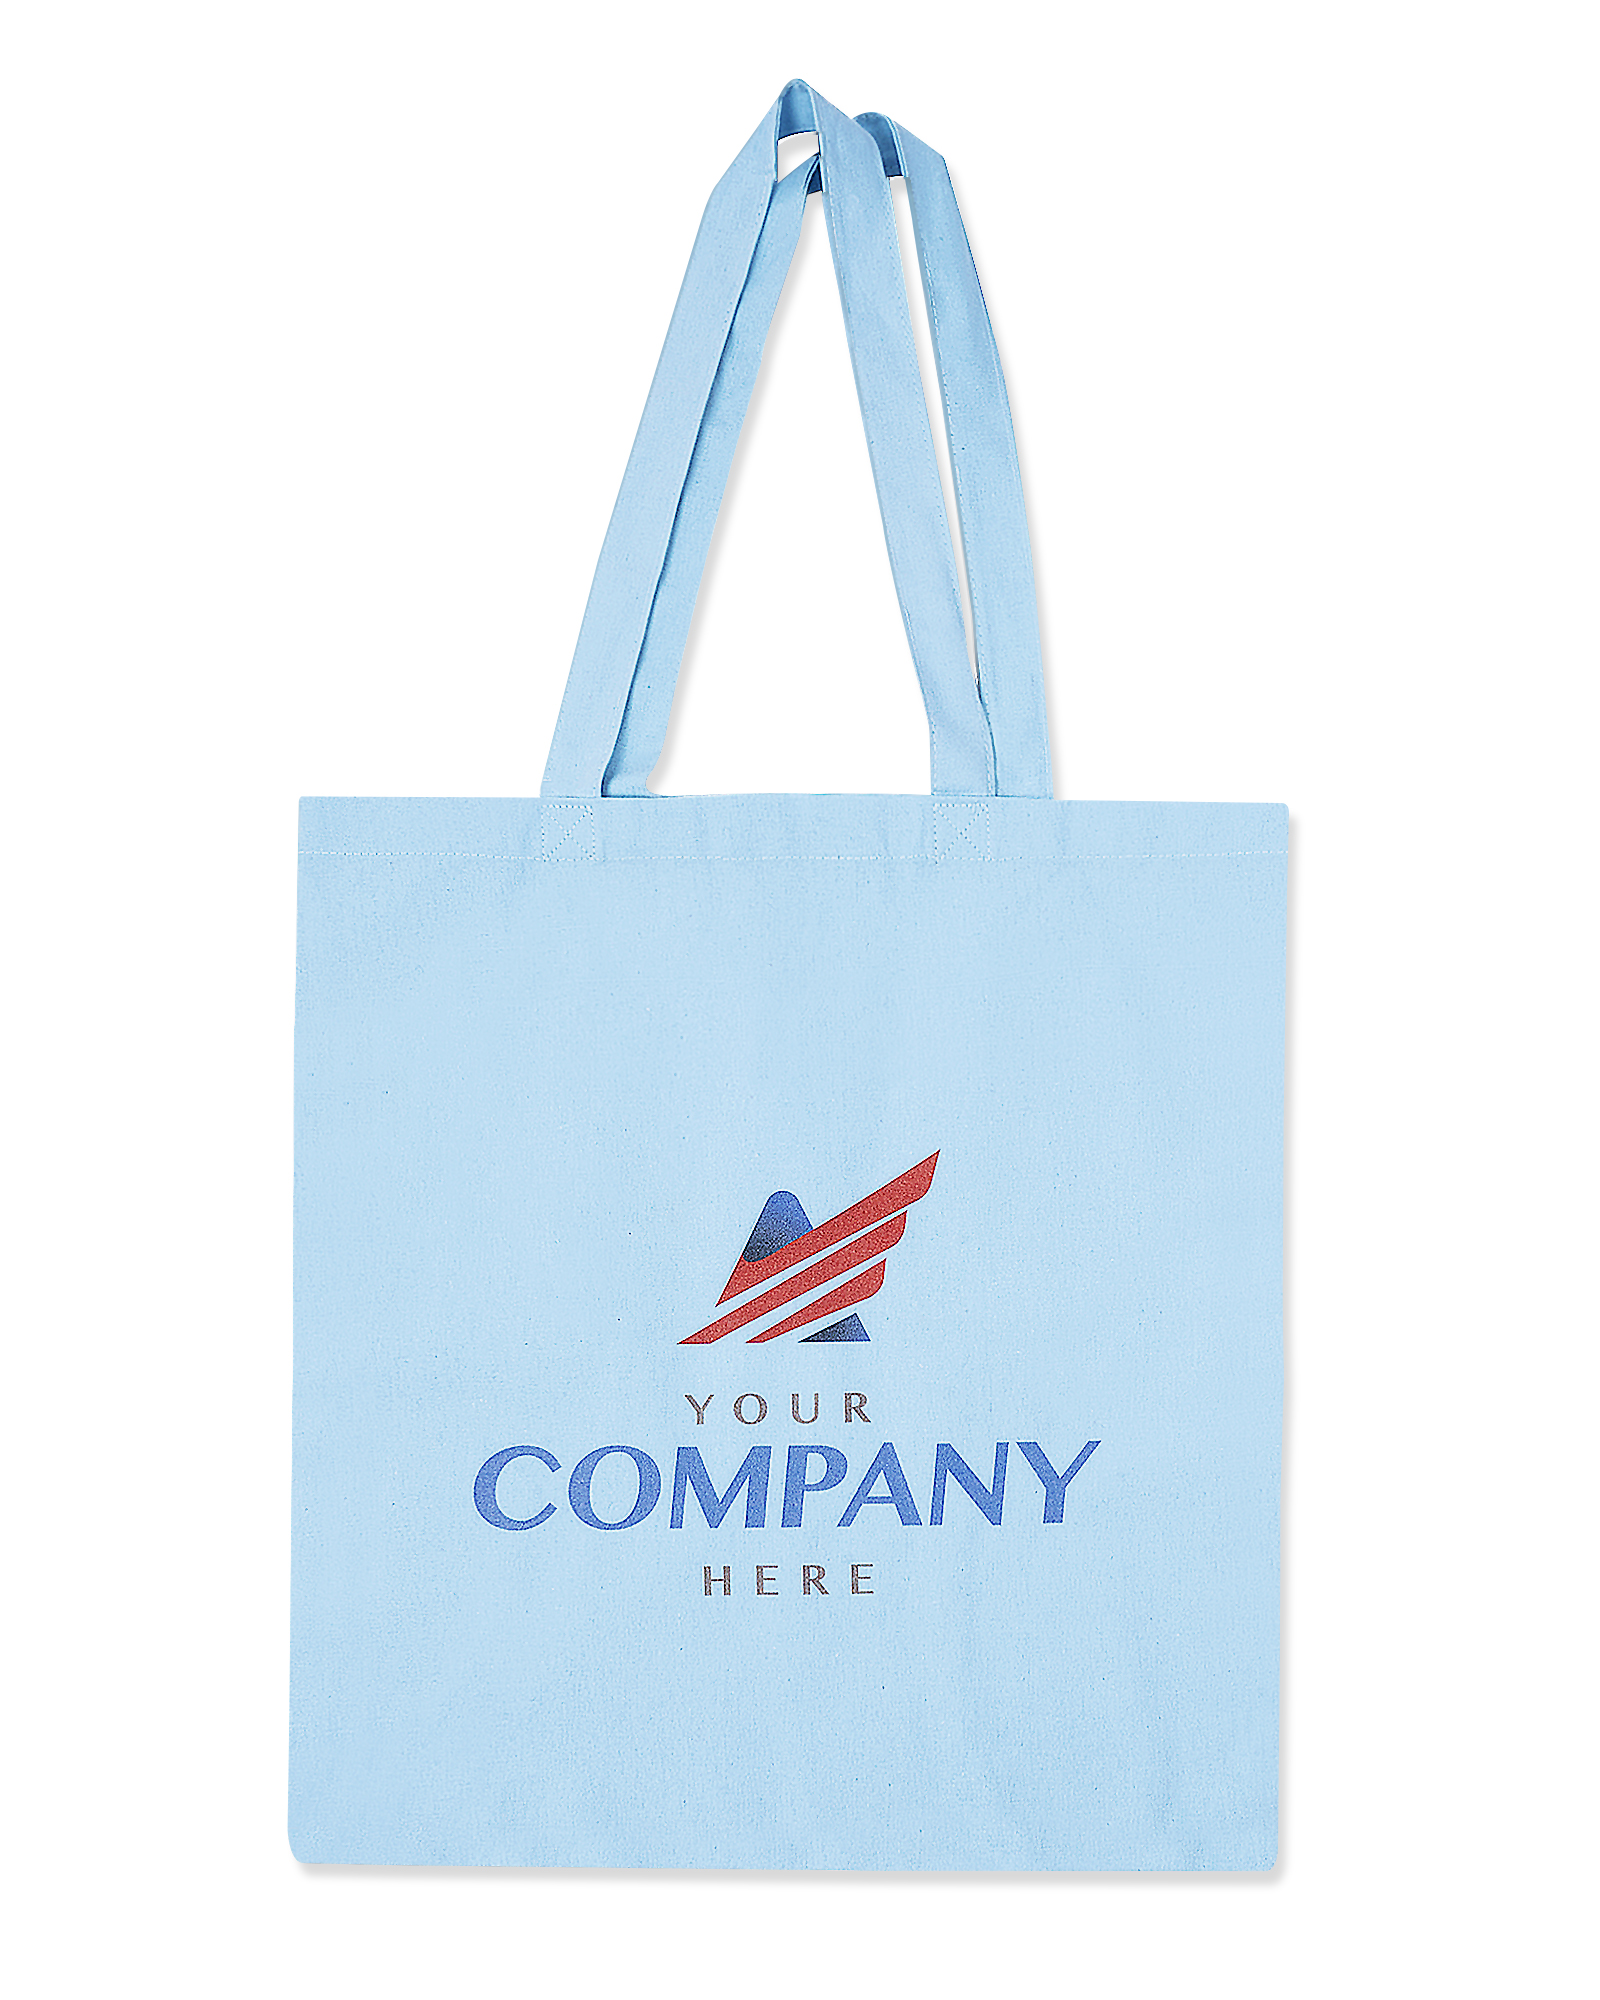 Fuel print of a generic company logo on a light blue canvas tote